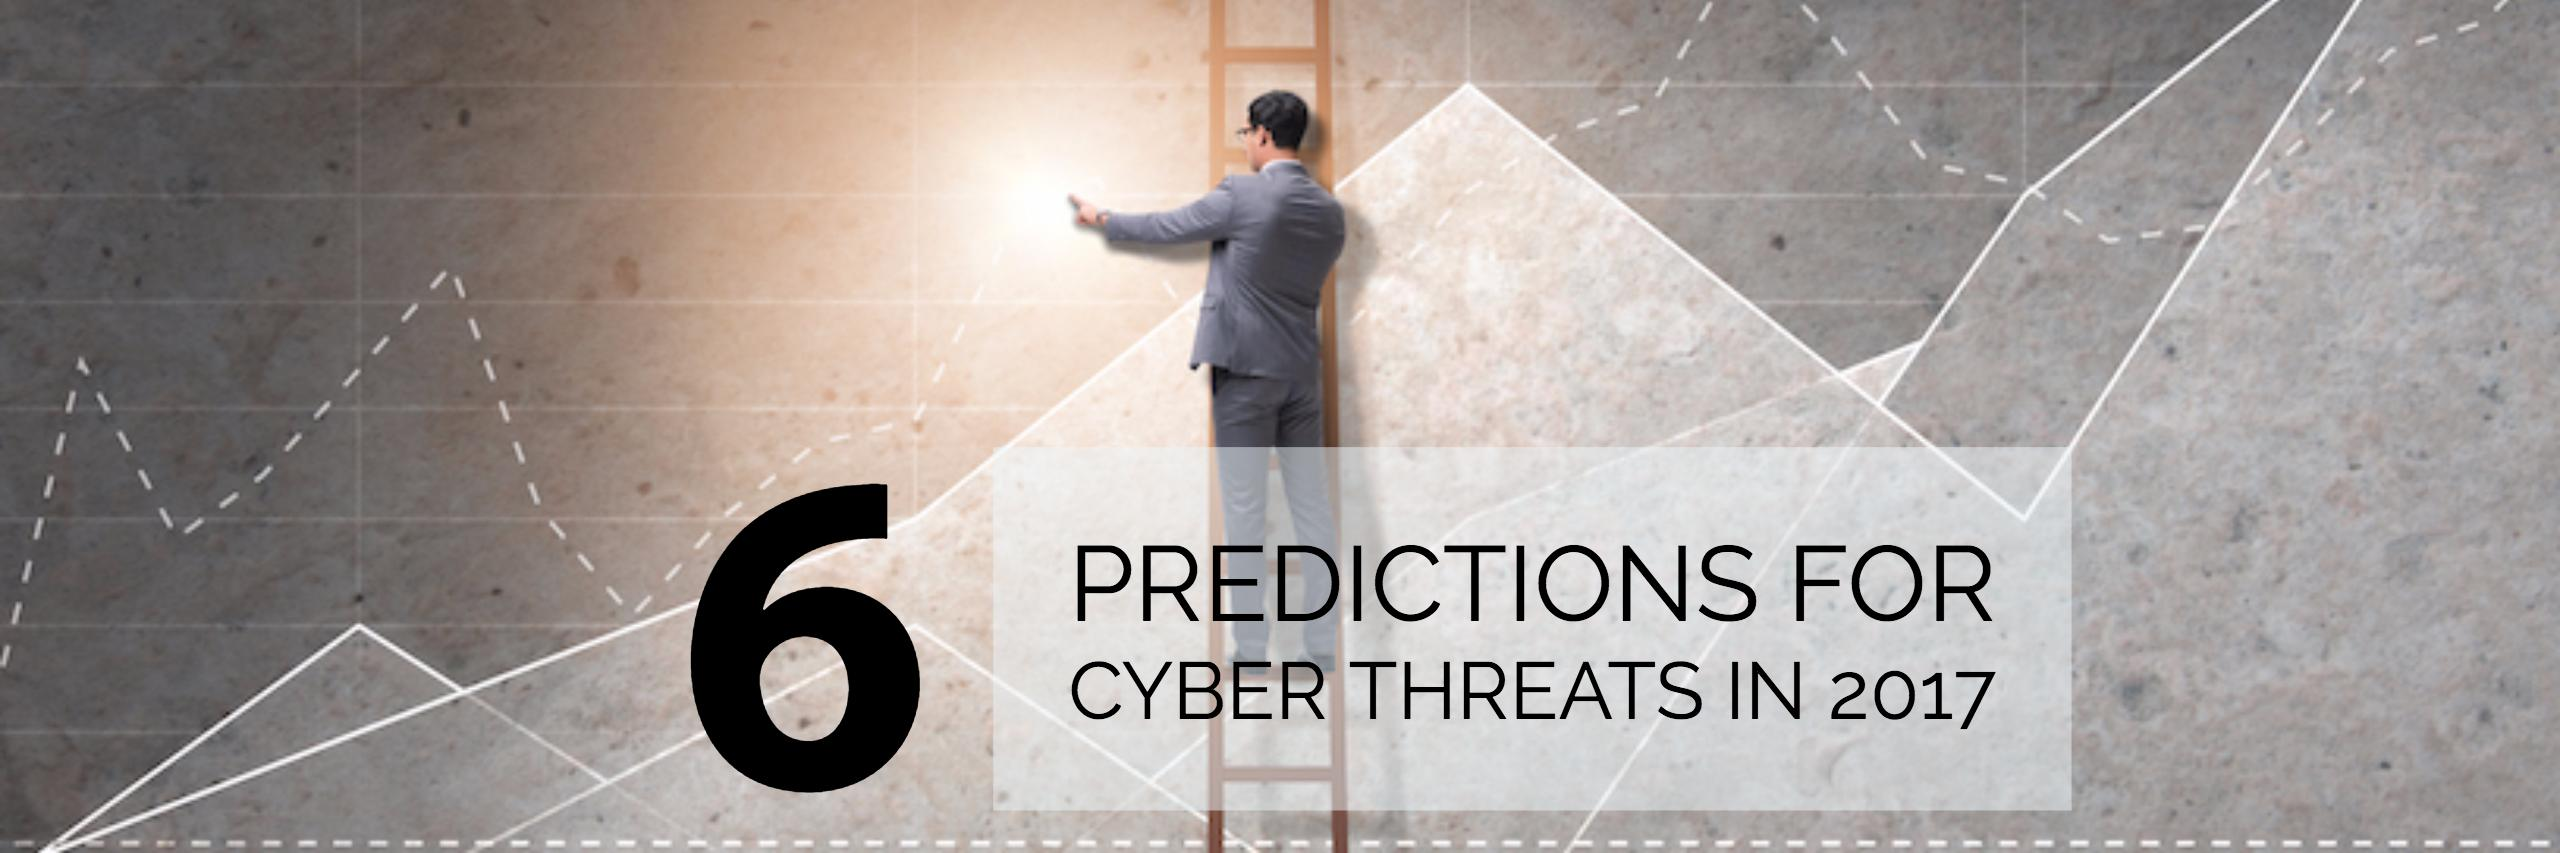 6 Predictions for Cyberattacks and Threats in 2017